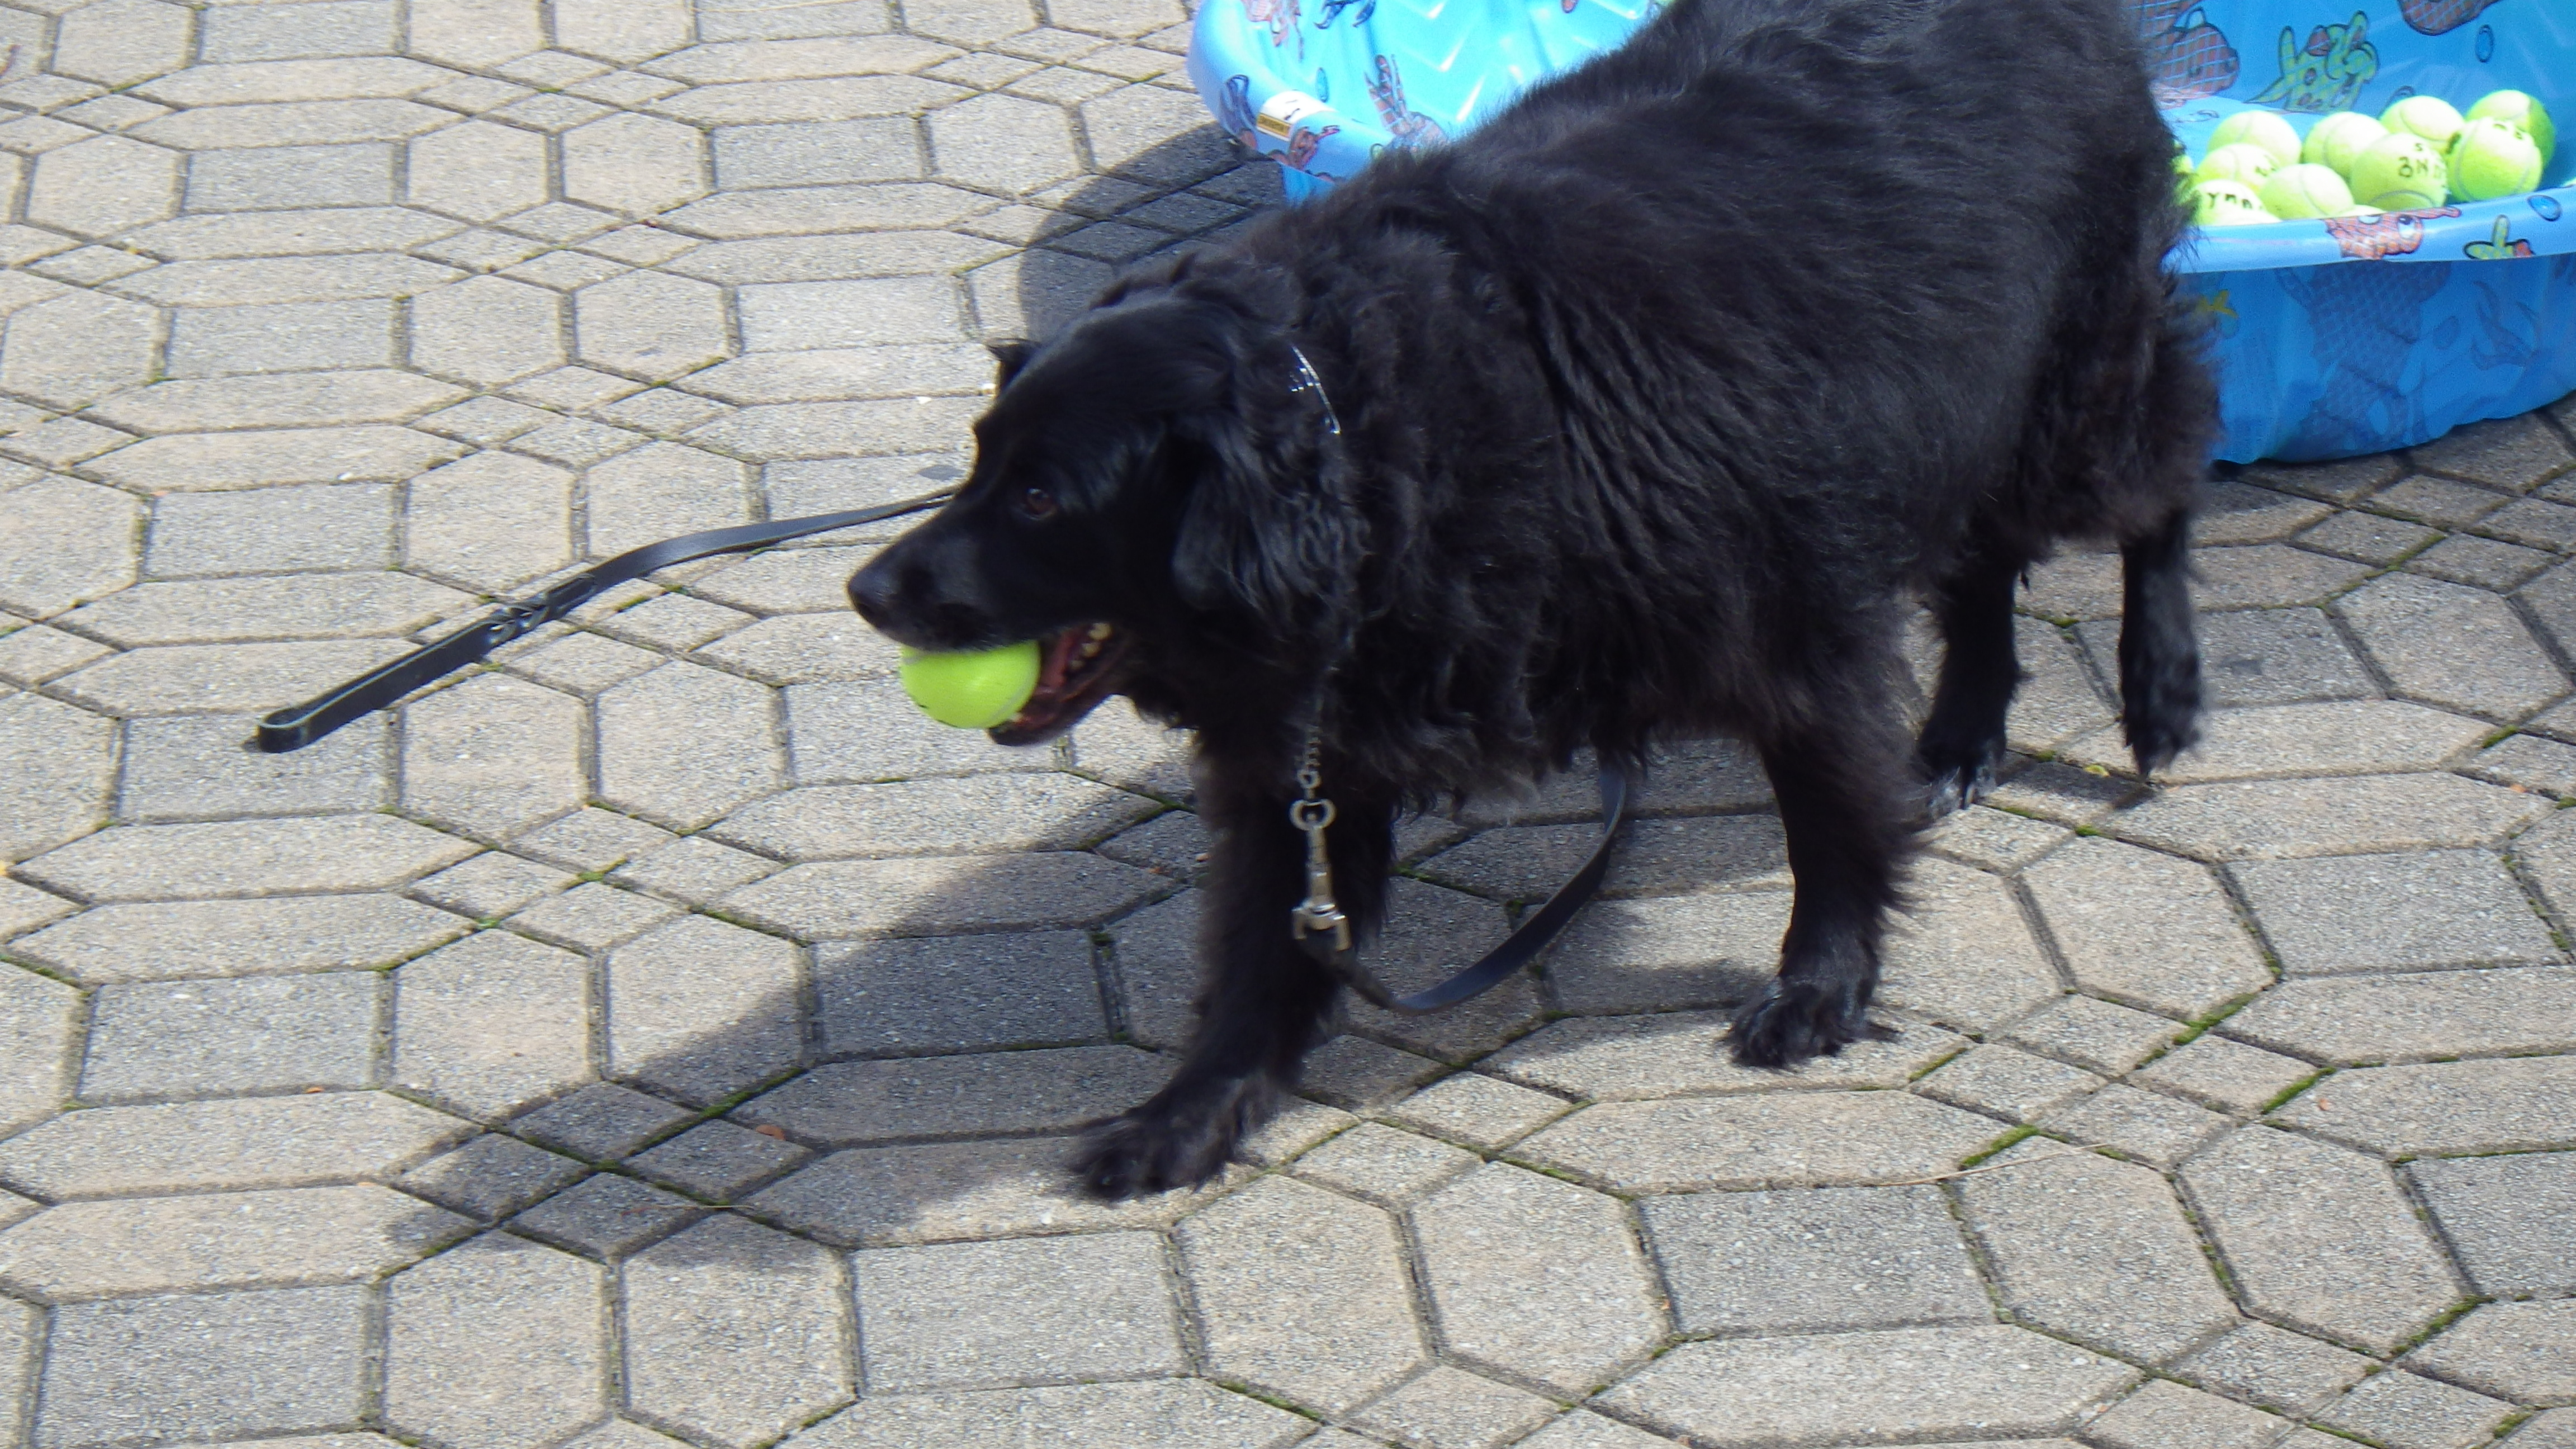 Melanie fetches the winning tennis ball